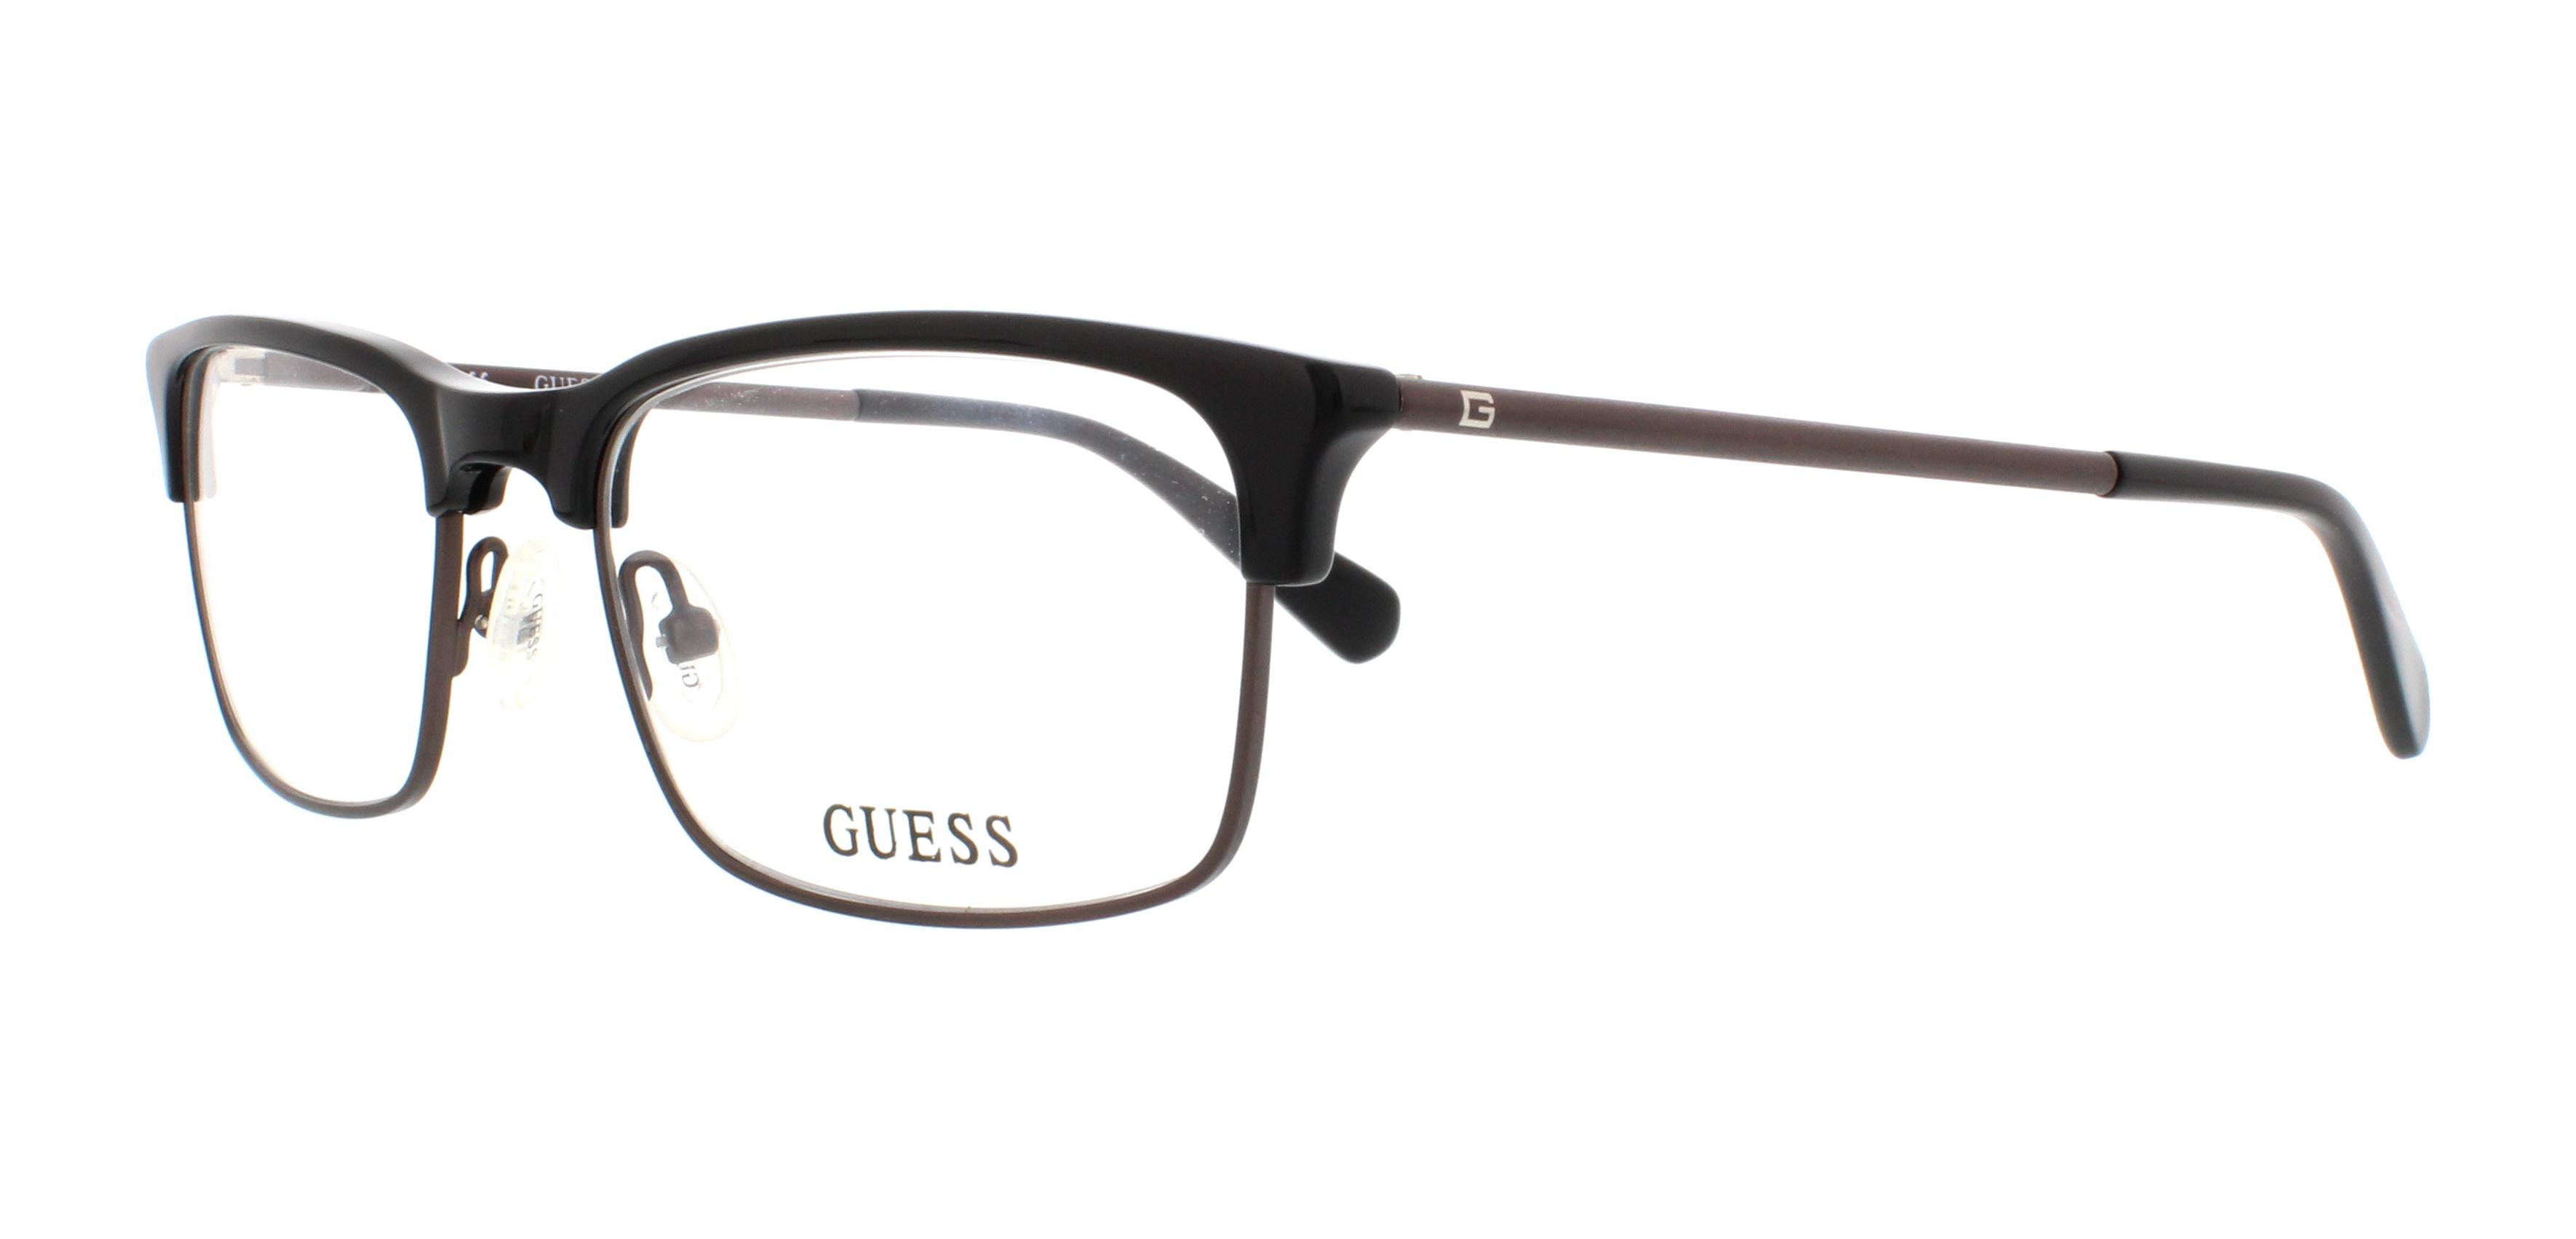 GUESS Eyeglasses GU1886 001 Shiny Black 53MM 664689735198 | eBay